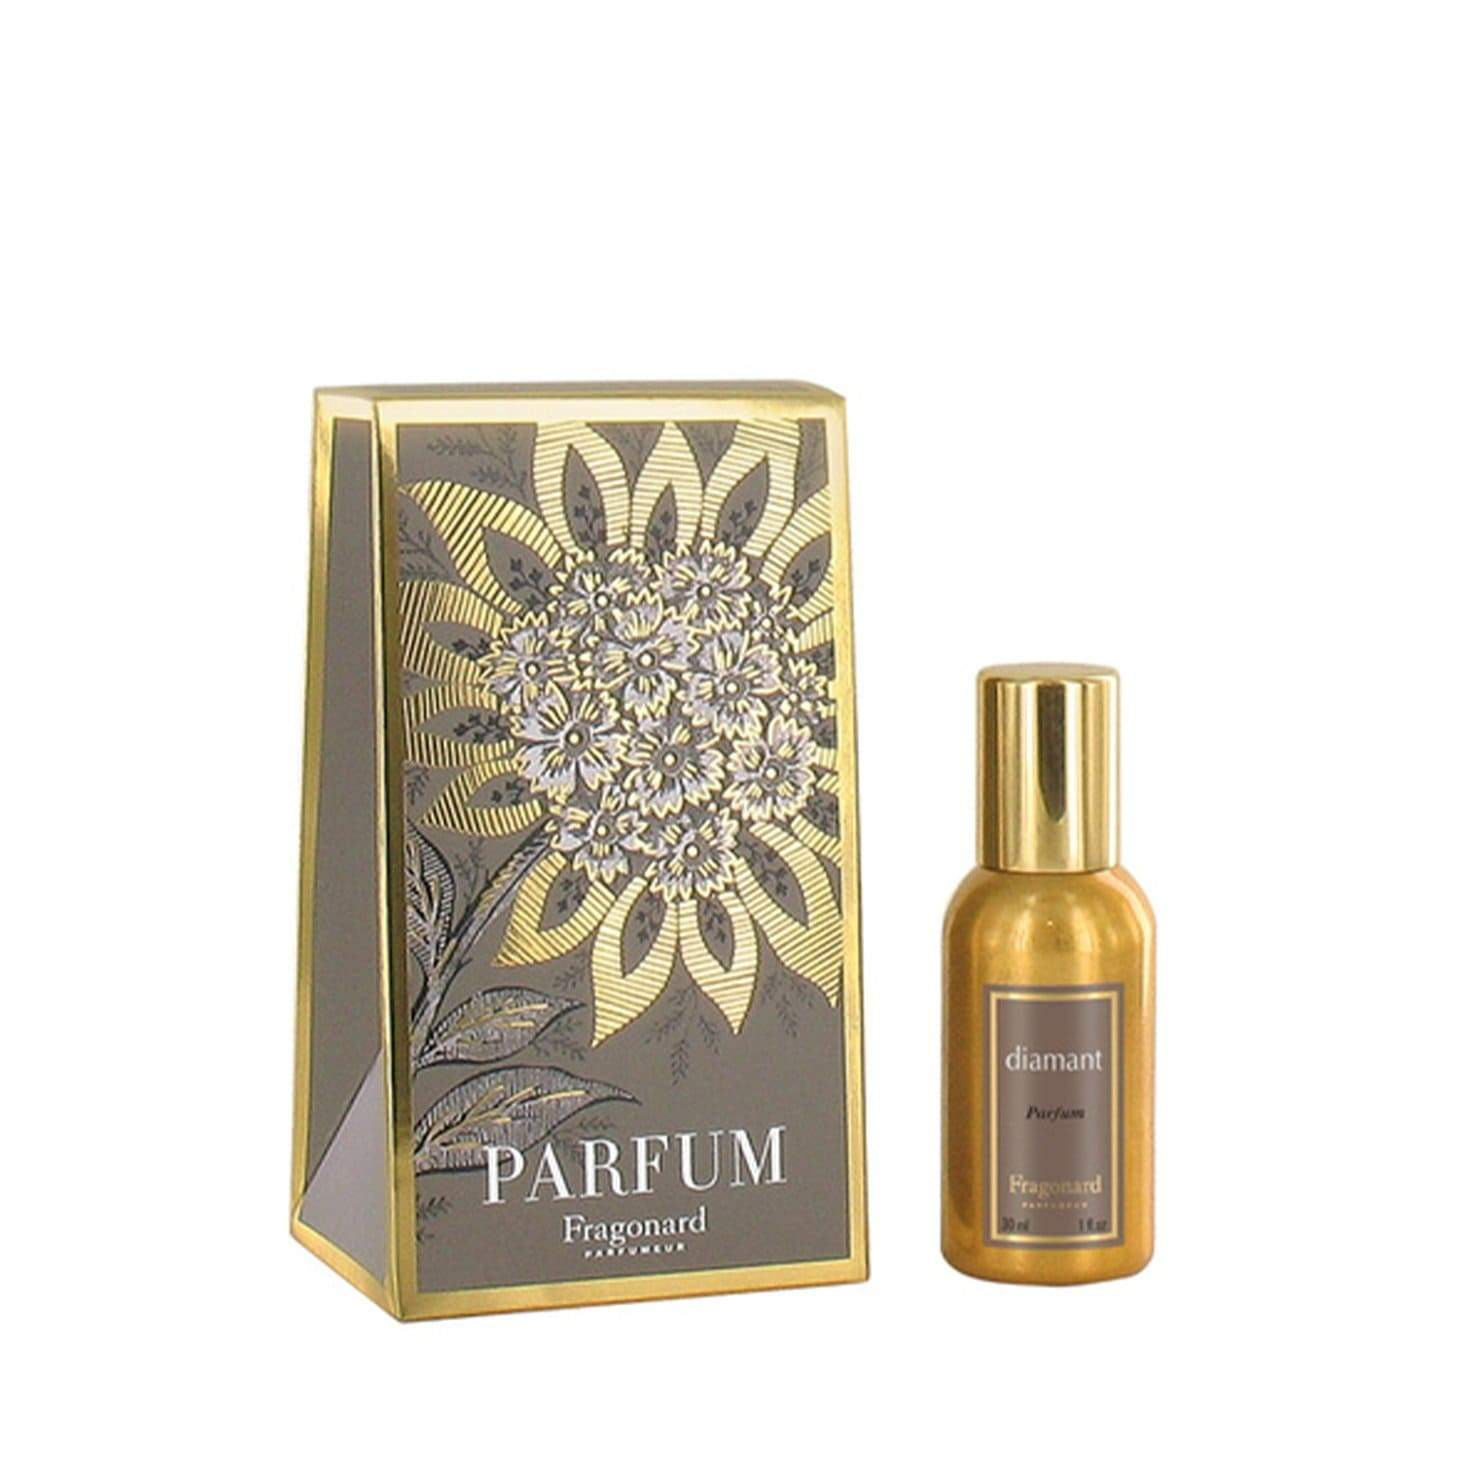 Fragonard Diamant 'Estagon' Parfum 30ml